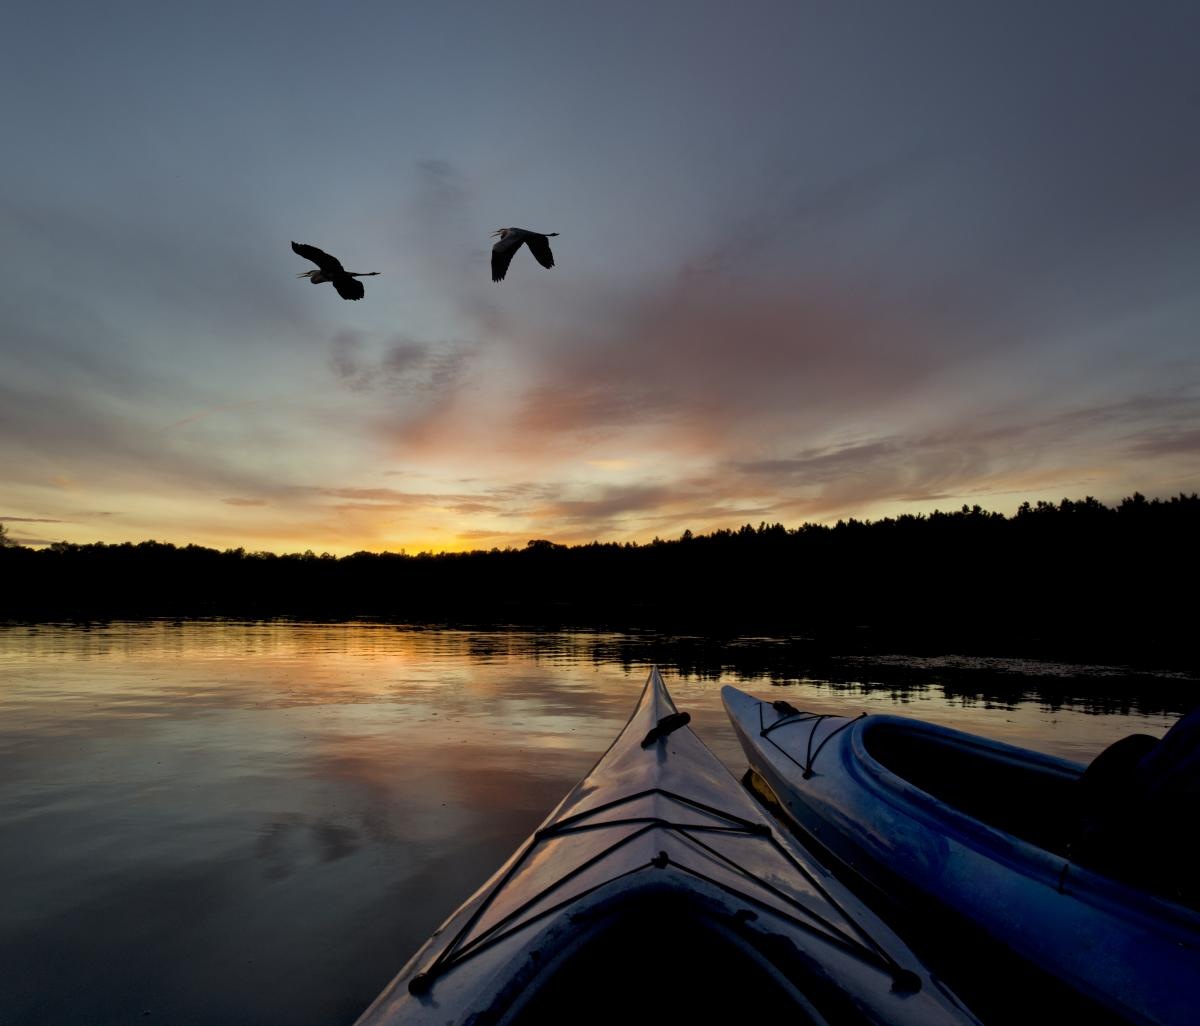 kayaking on the river with 2 birds flying overhead at sunset